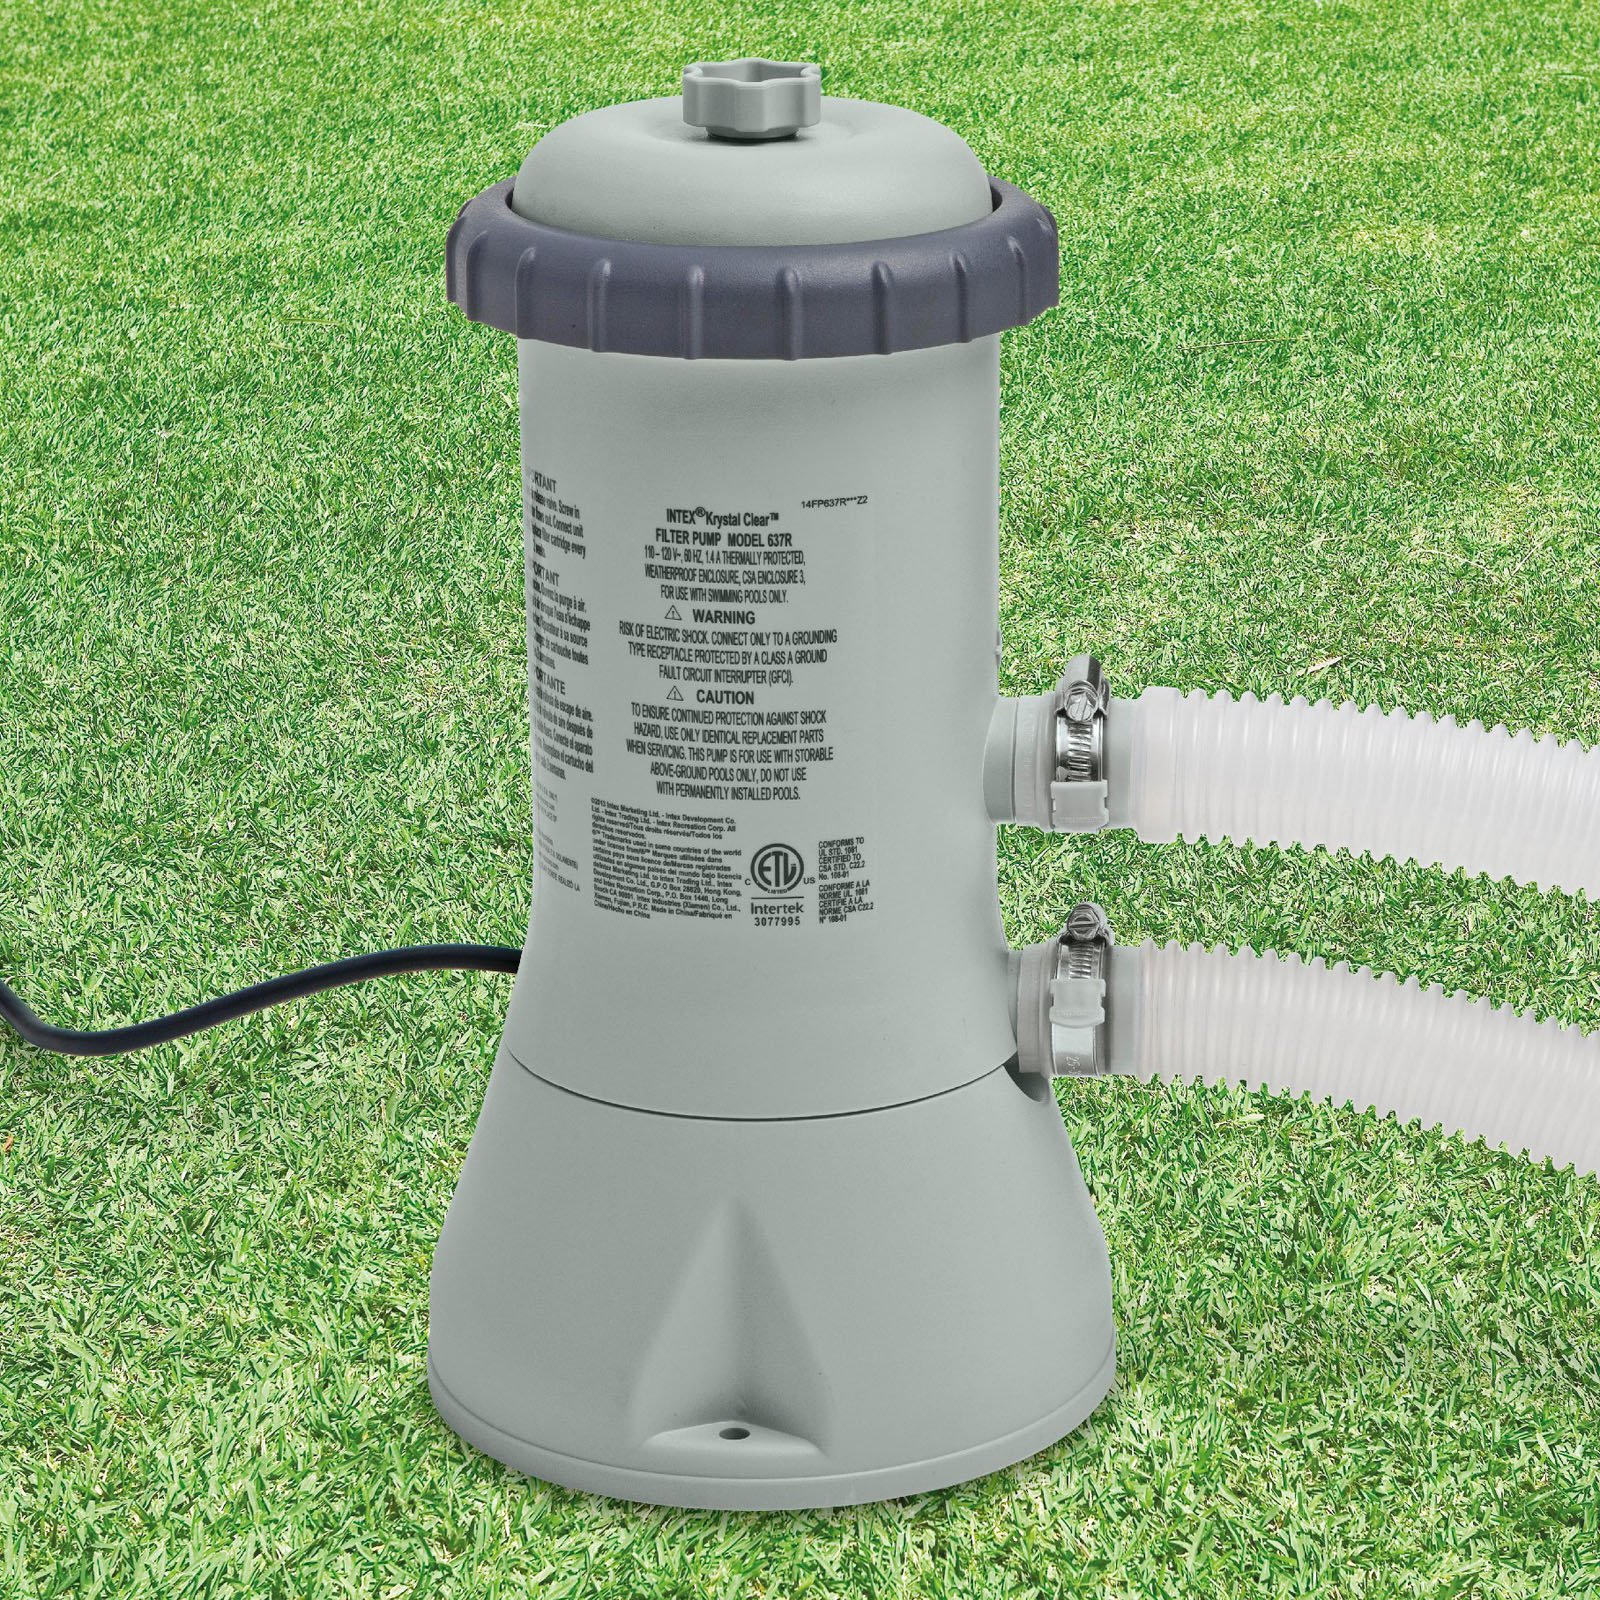 Intex 1,000 GPH Krystal Clear Cartridge Filter Pump For Above Ground Pool by INTEX TRADING LTD